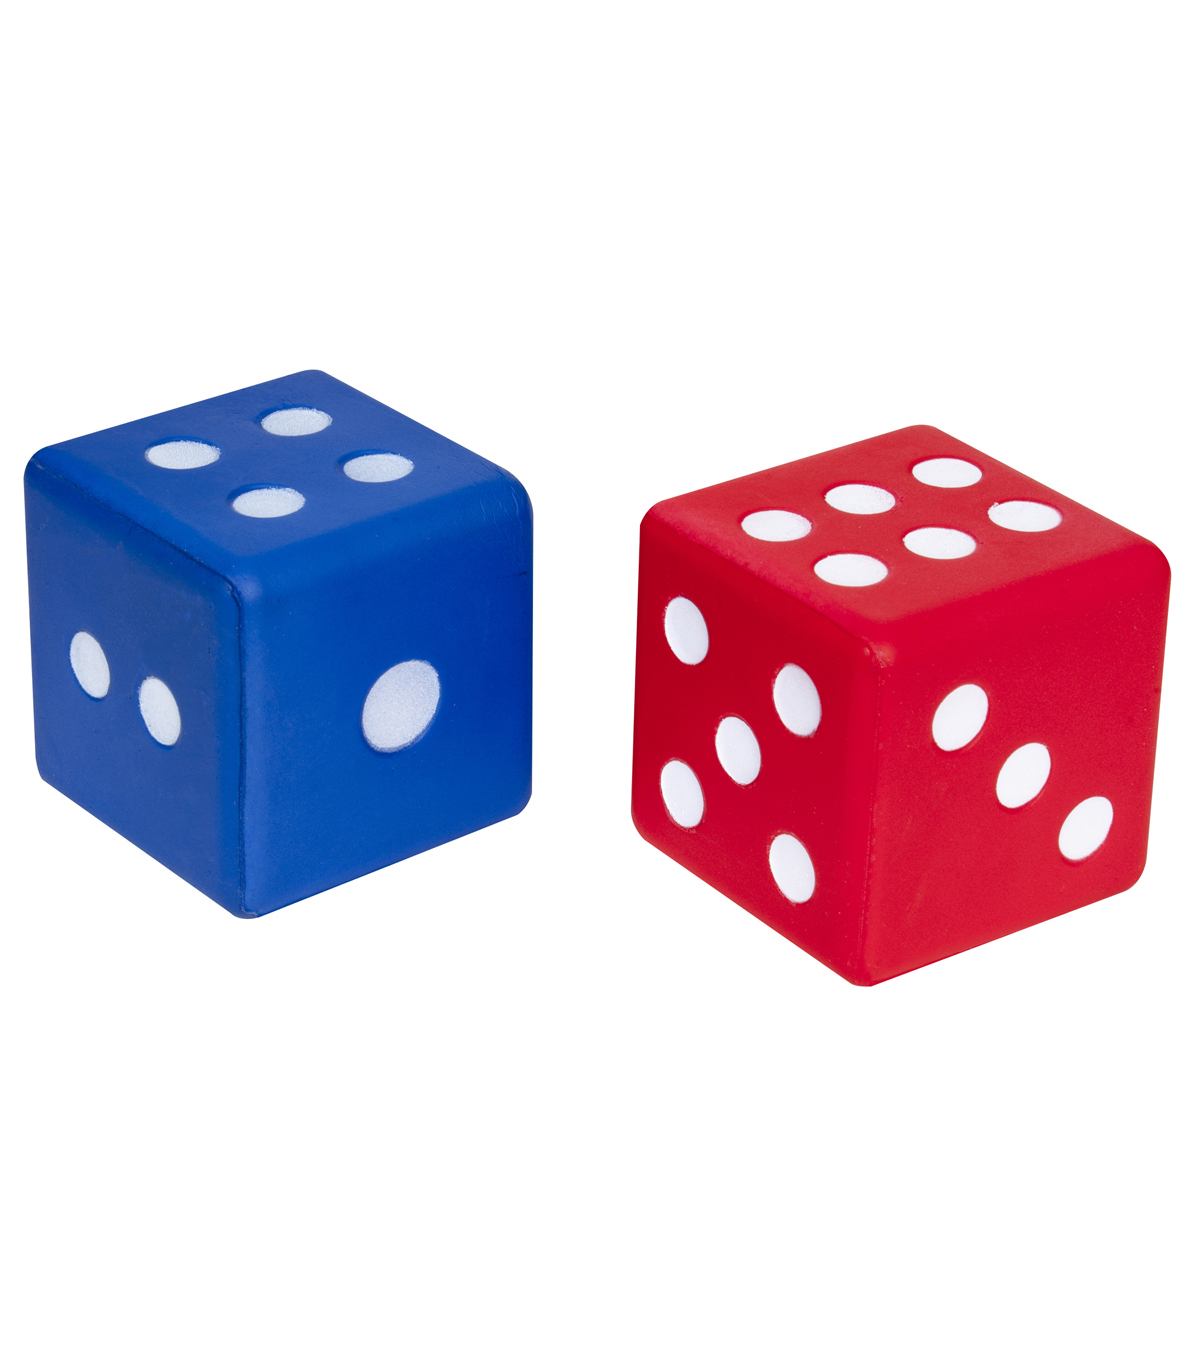 Learning Advantage Jumbo Foam Dice, Set of 2